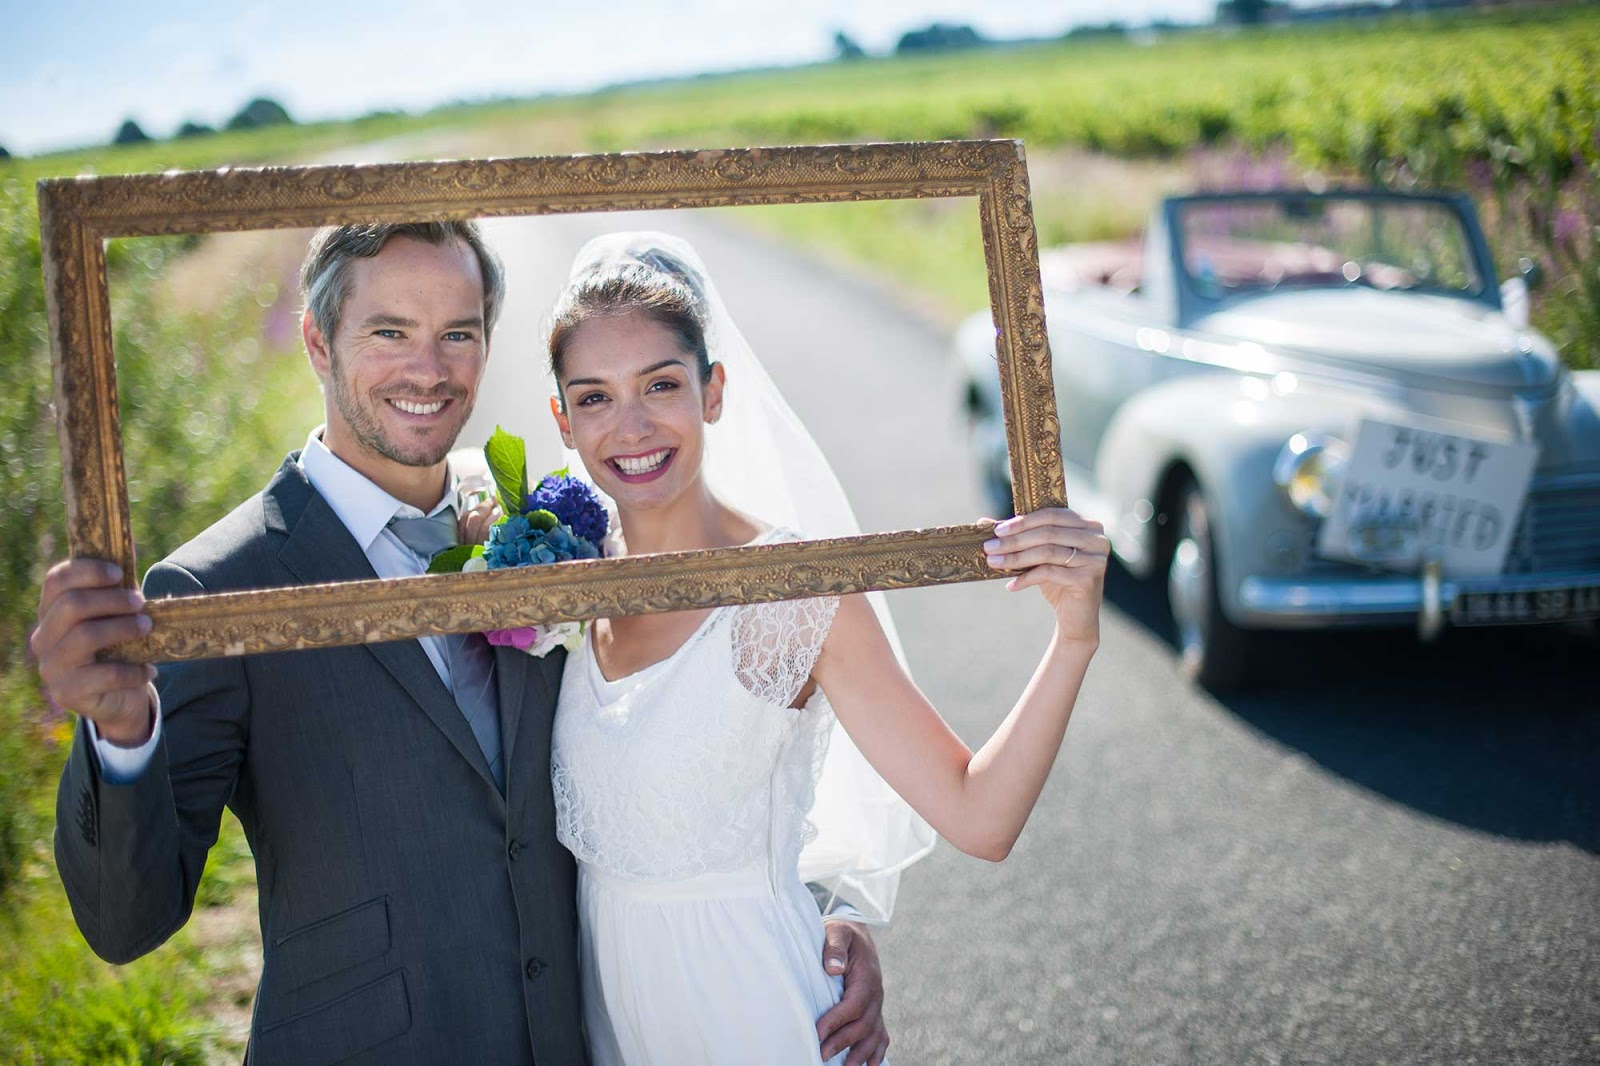 wedivite blogspot wedding e invitations Providing photos of both bride and groom and address of the venue and date of wedding simply makes Free E Invitation for your valuable guests